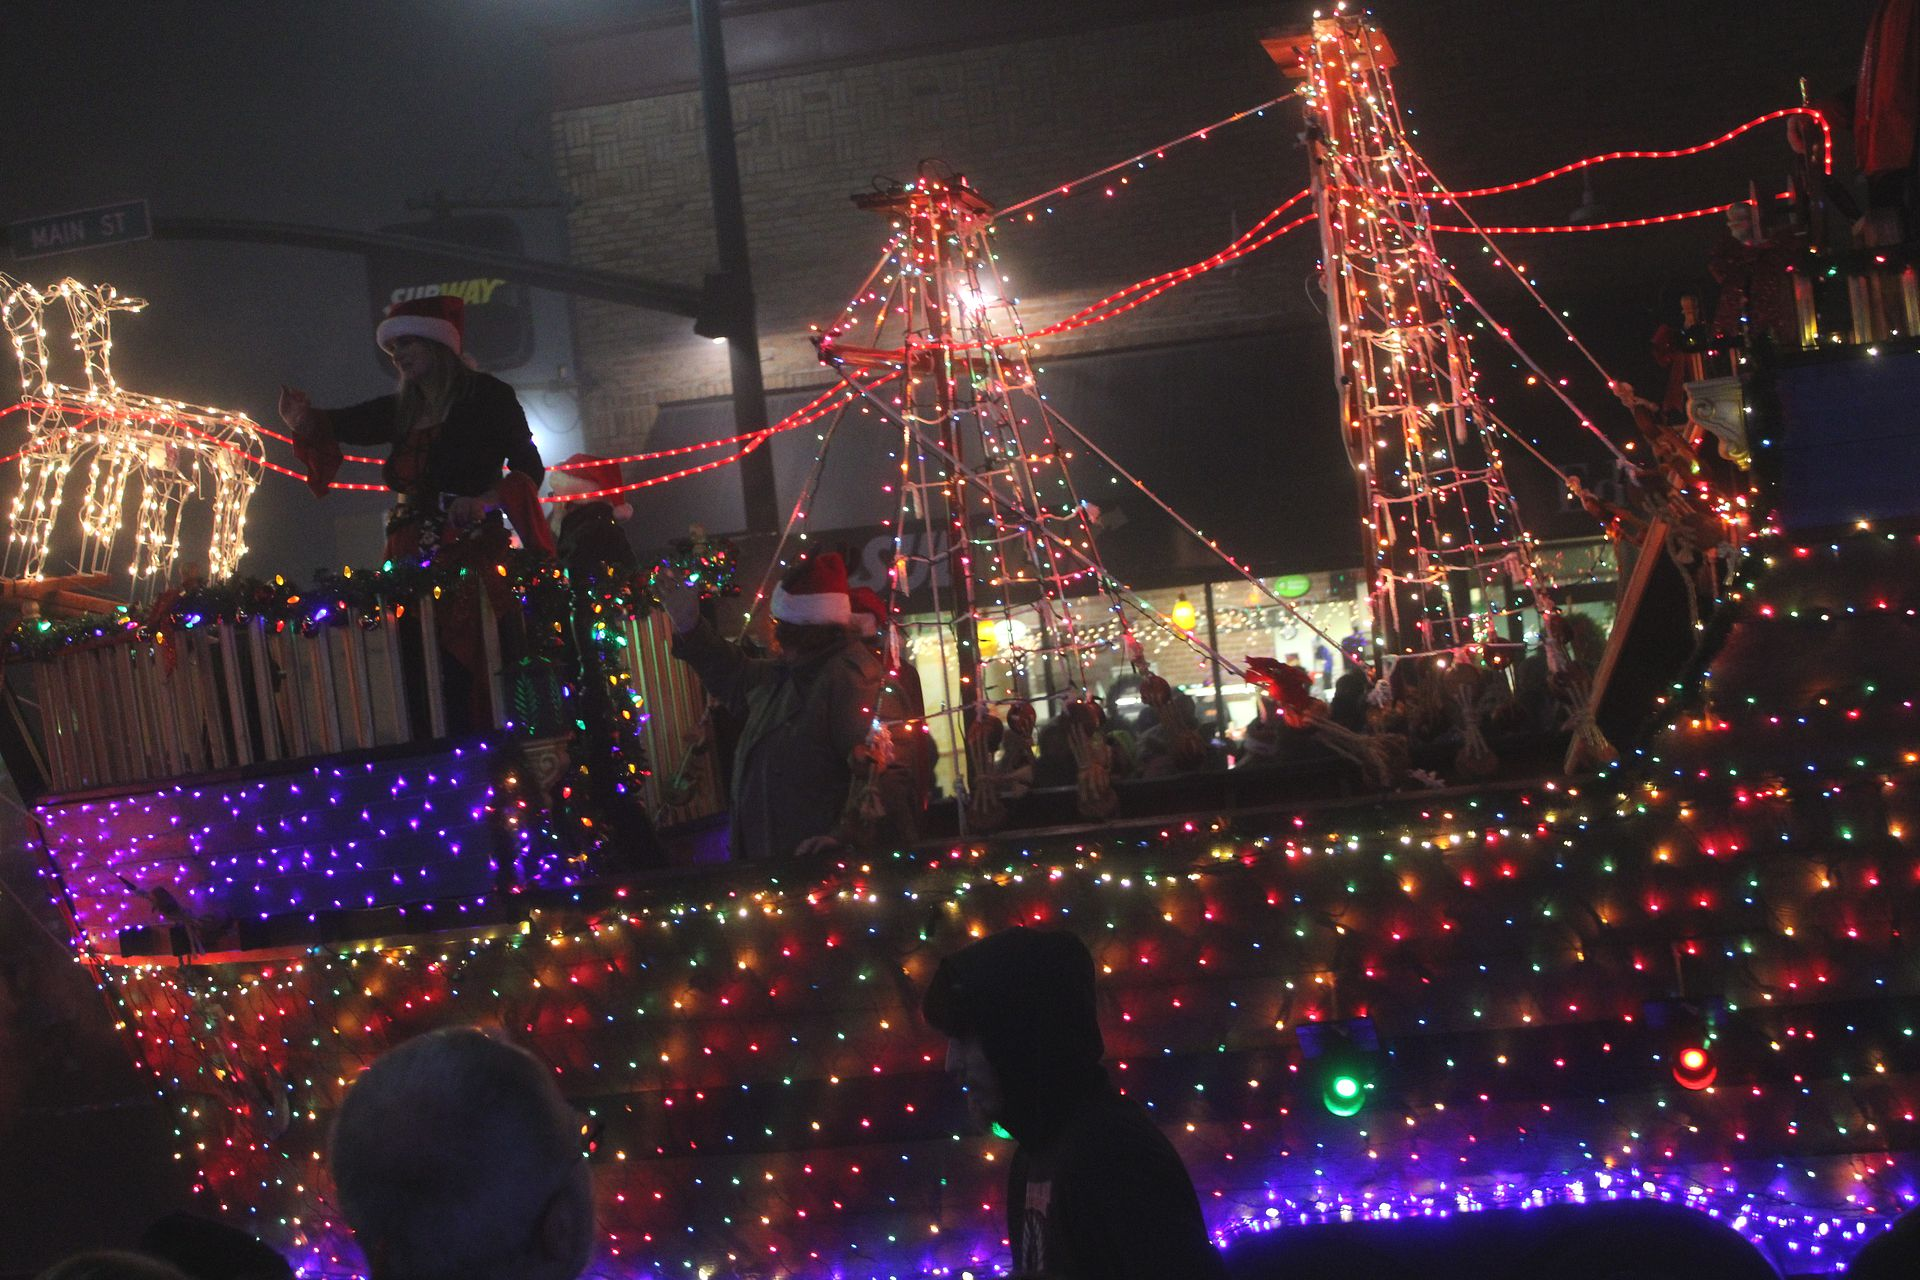 056 Montesano Festival of Lights December 14, 2019